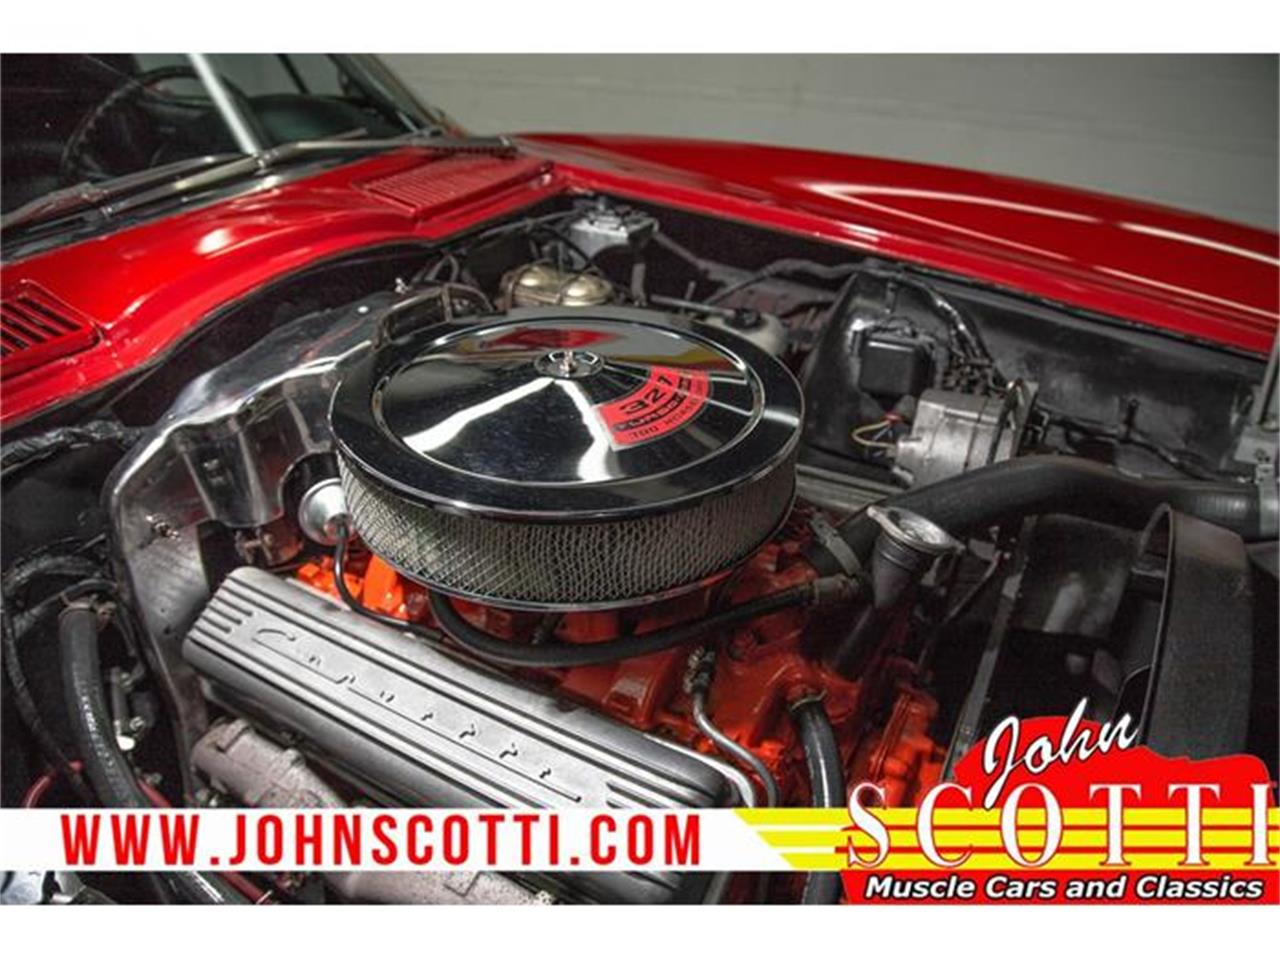 Large Picture of 1967 Corvette located in Montreal Quebec - $59,990.00 Offered by John Scotti Classic Cars - GA0F